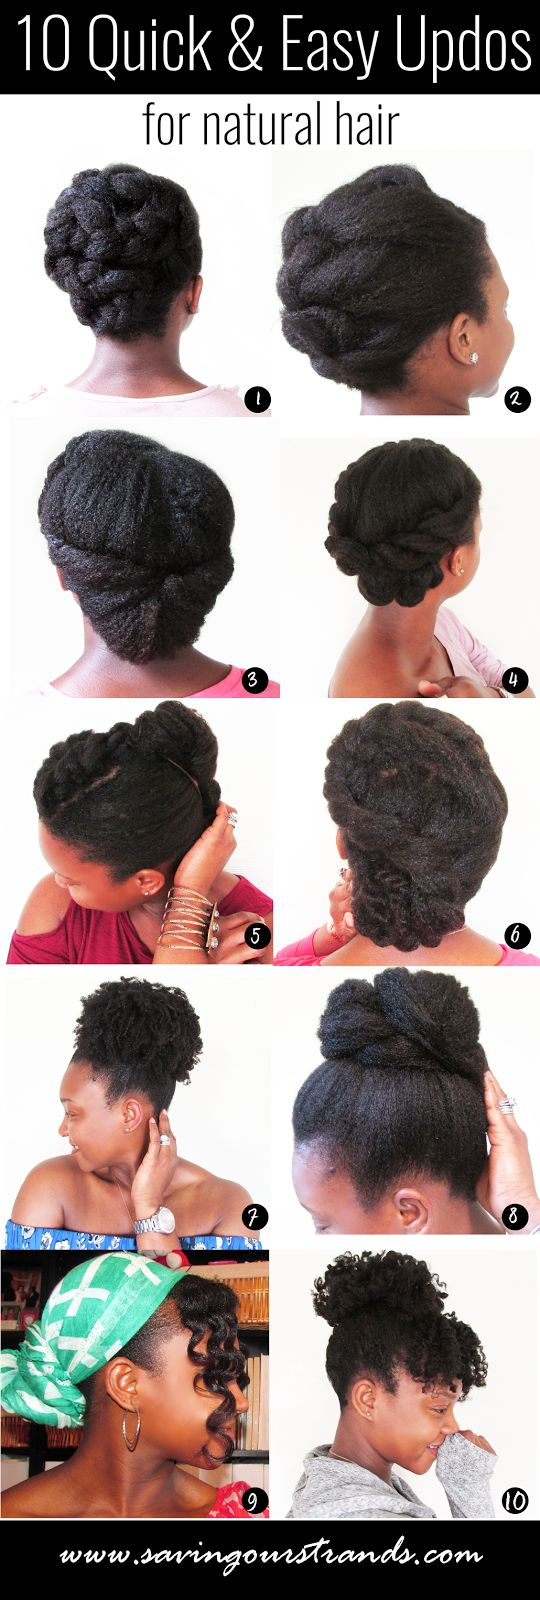 Best 25 Natural Hair Updo Ideas On Pinterest Natural